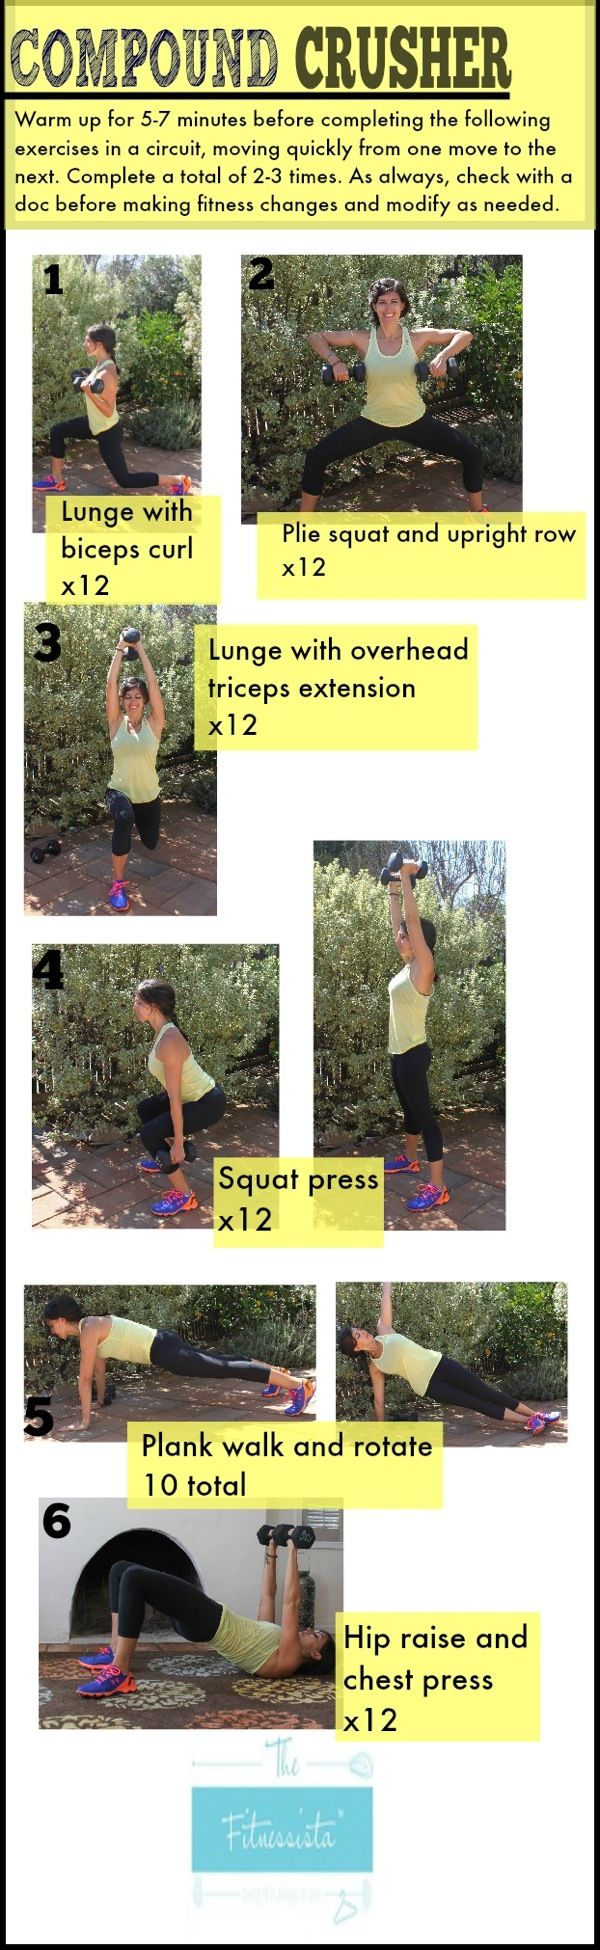 Compound crusher workout